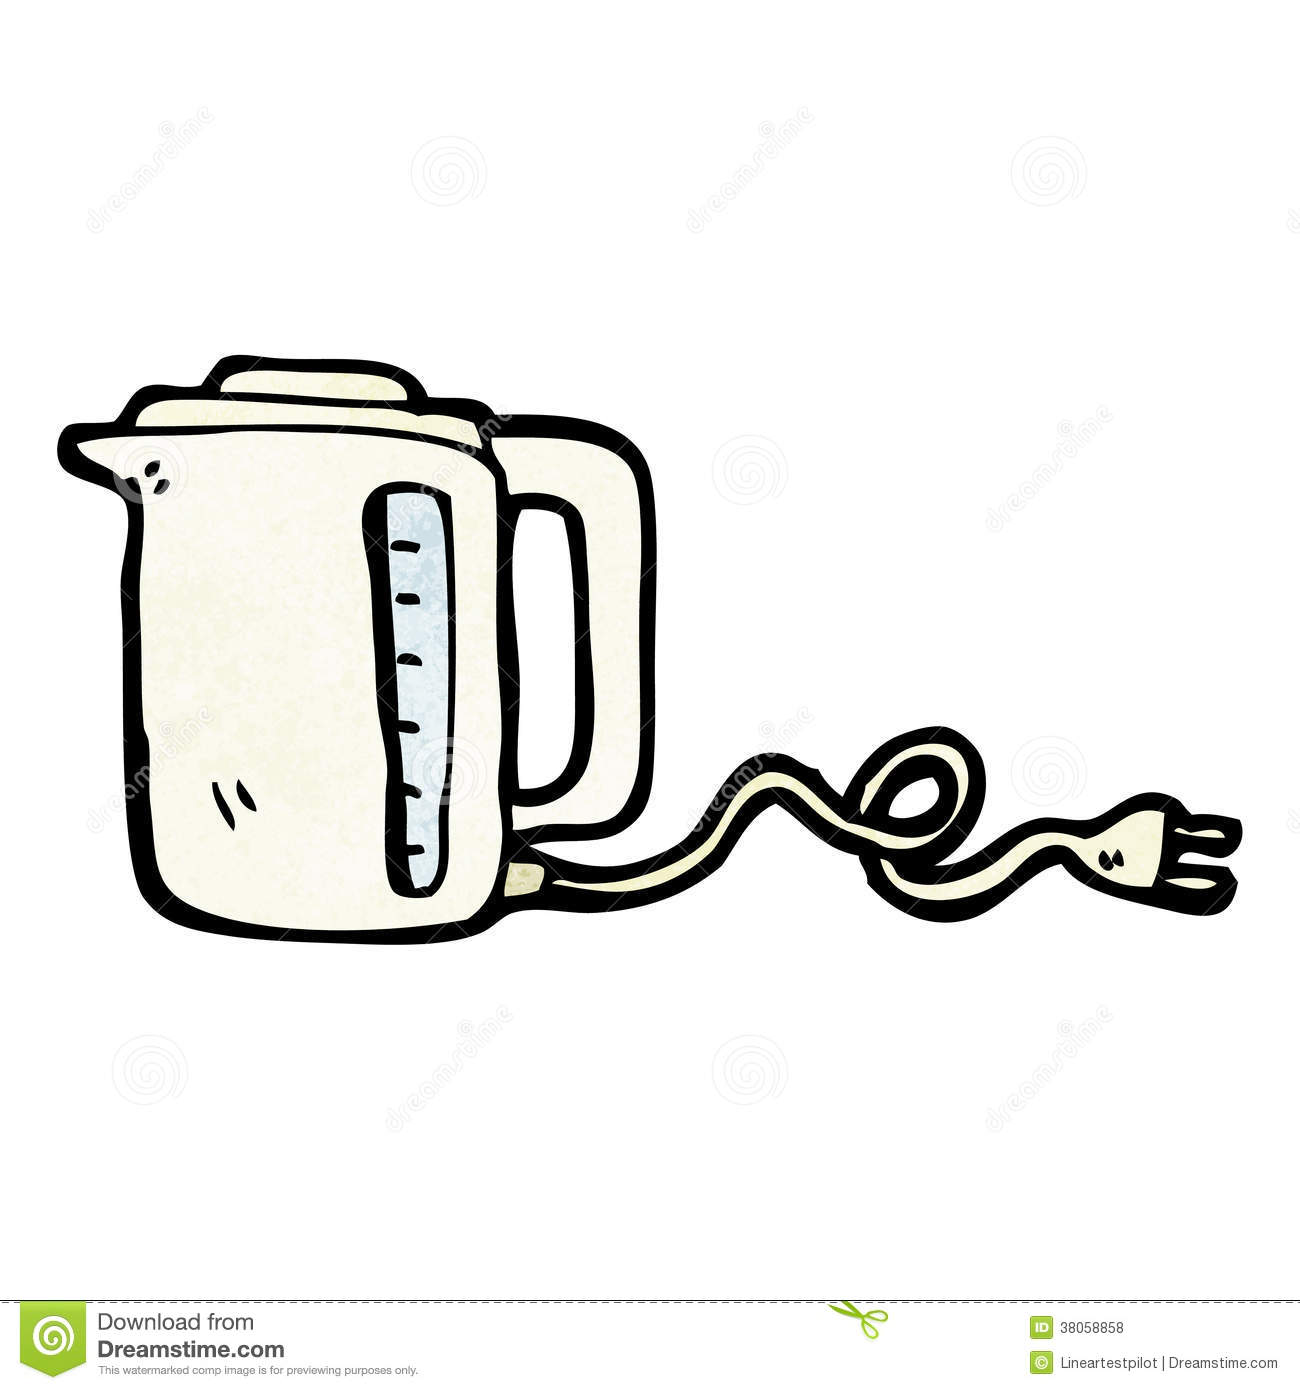 More similar stock images of cartoon kettle